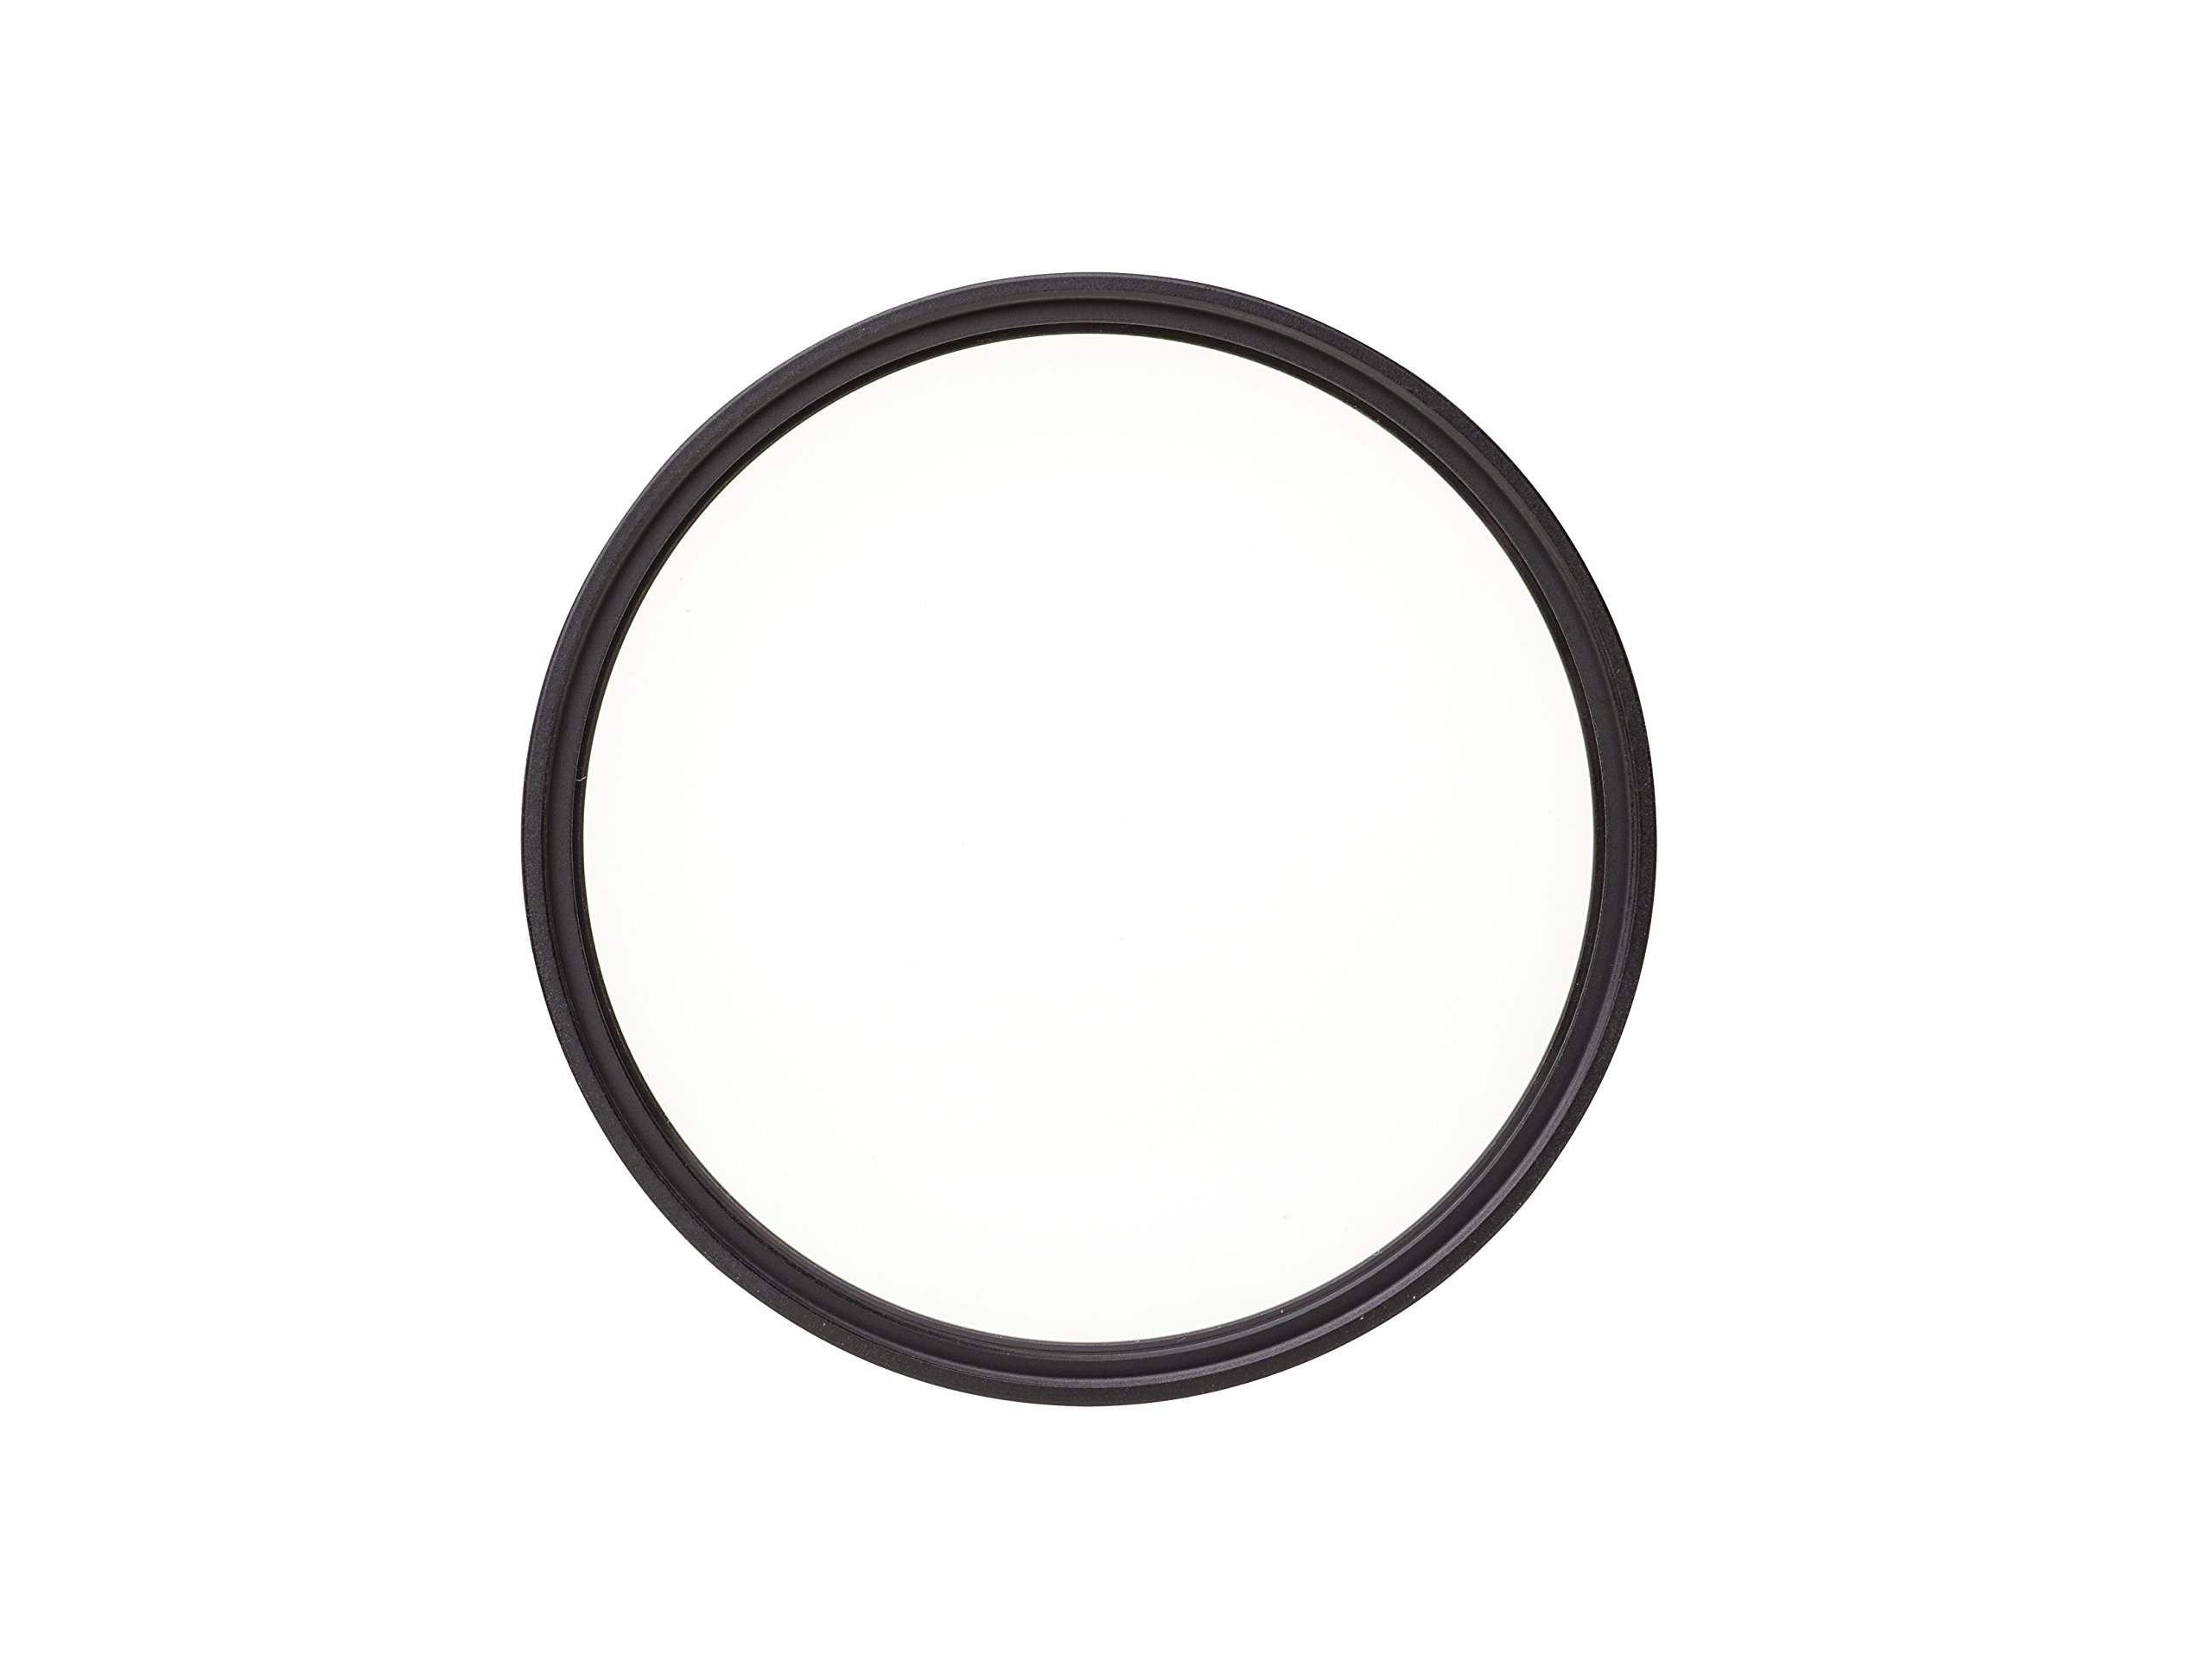 Heliopan 82mm UV SH-PMC Filter (708211) with specialty Schott glass in floating brass ring